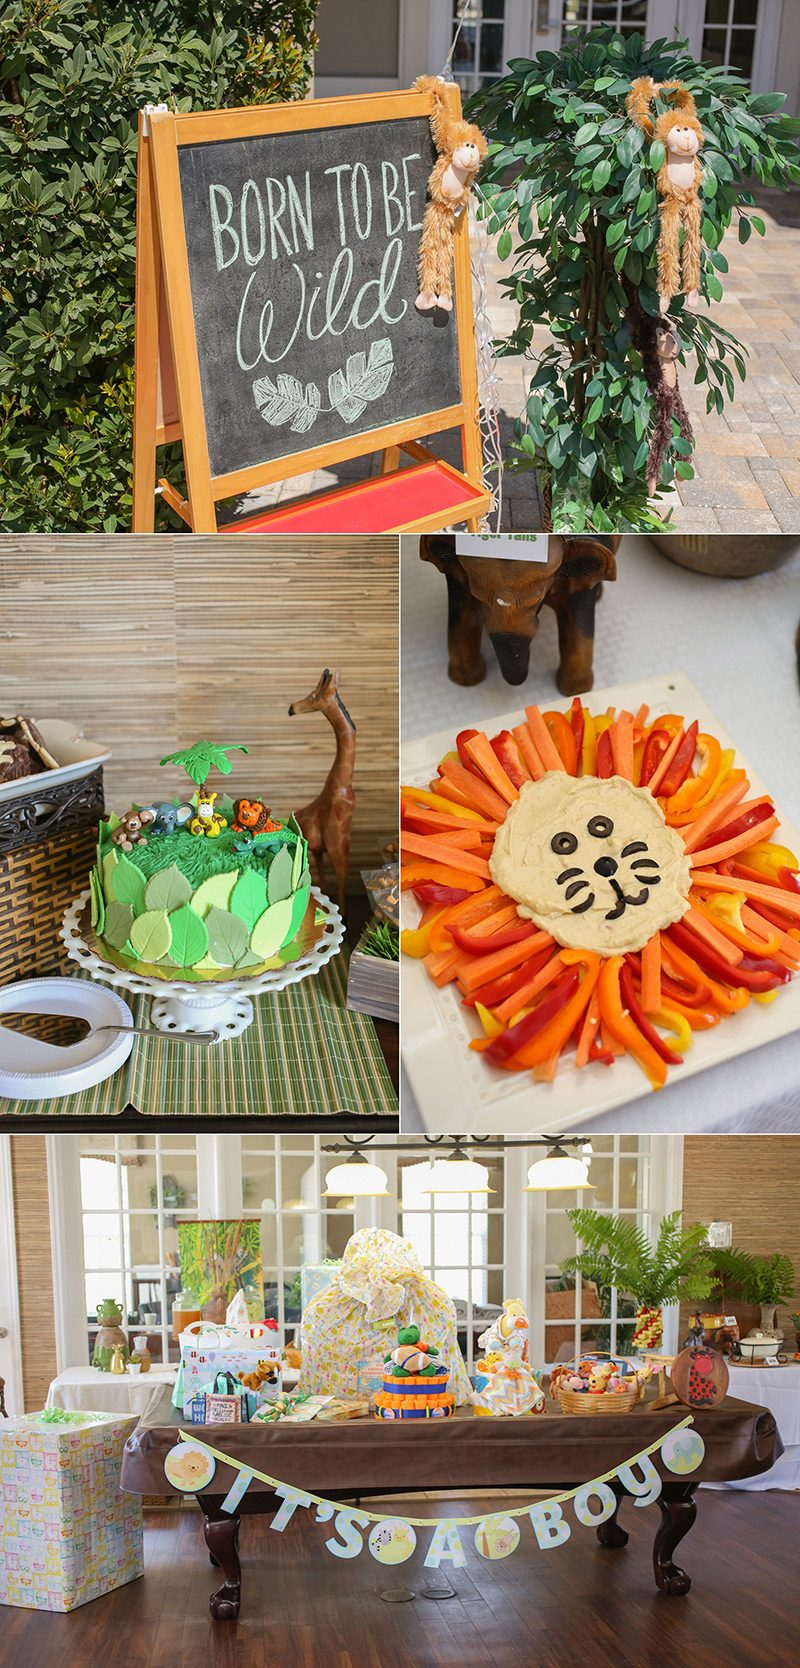 Clever decorations and snacks for a jungle baby shower